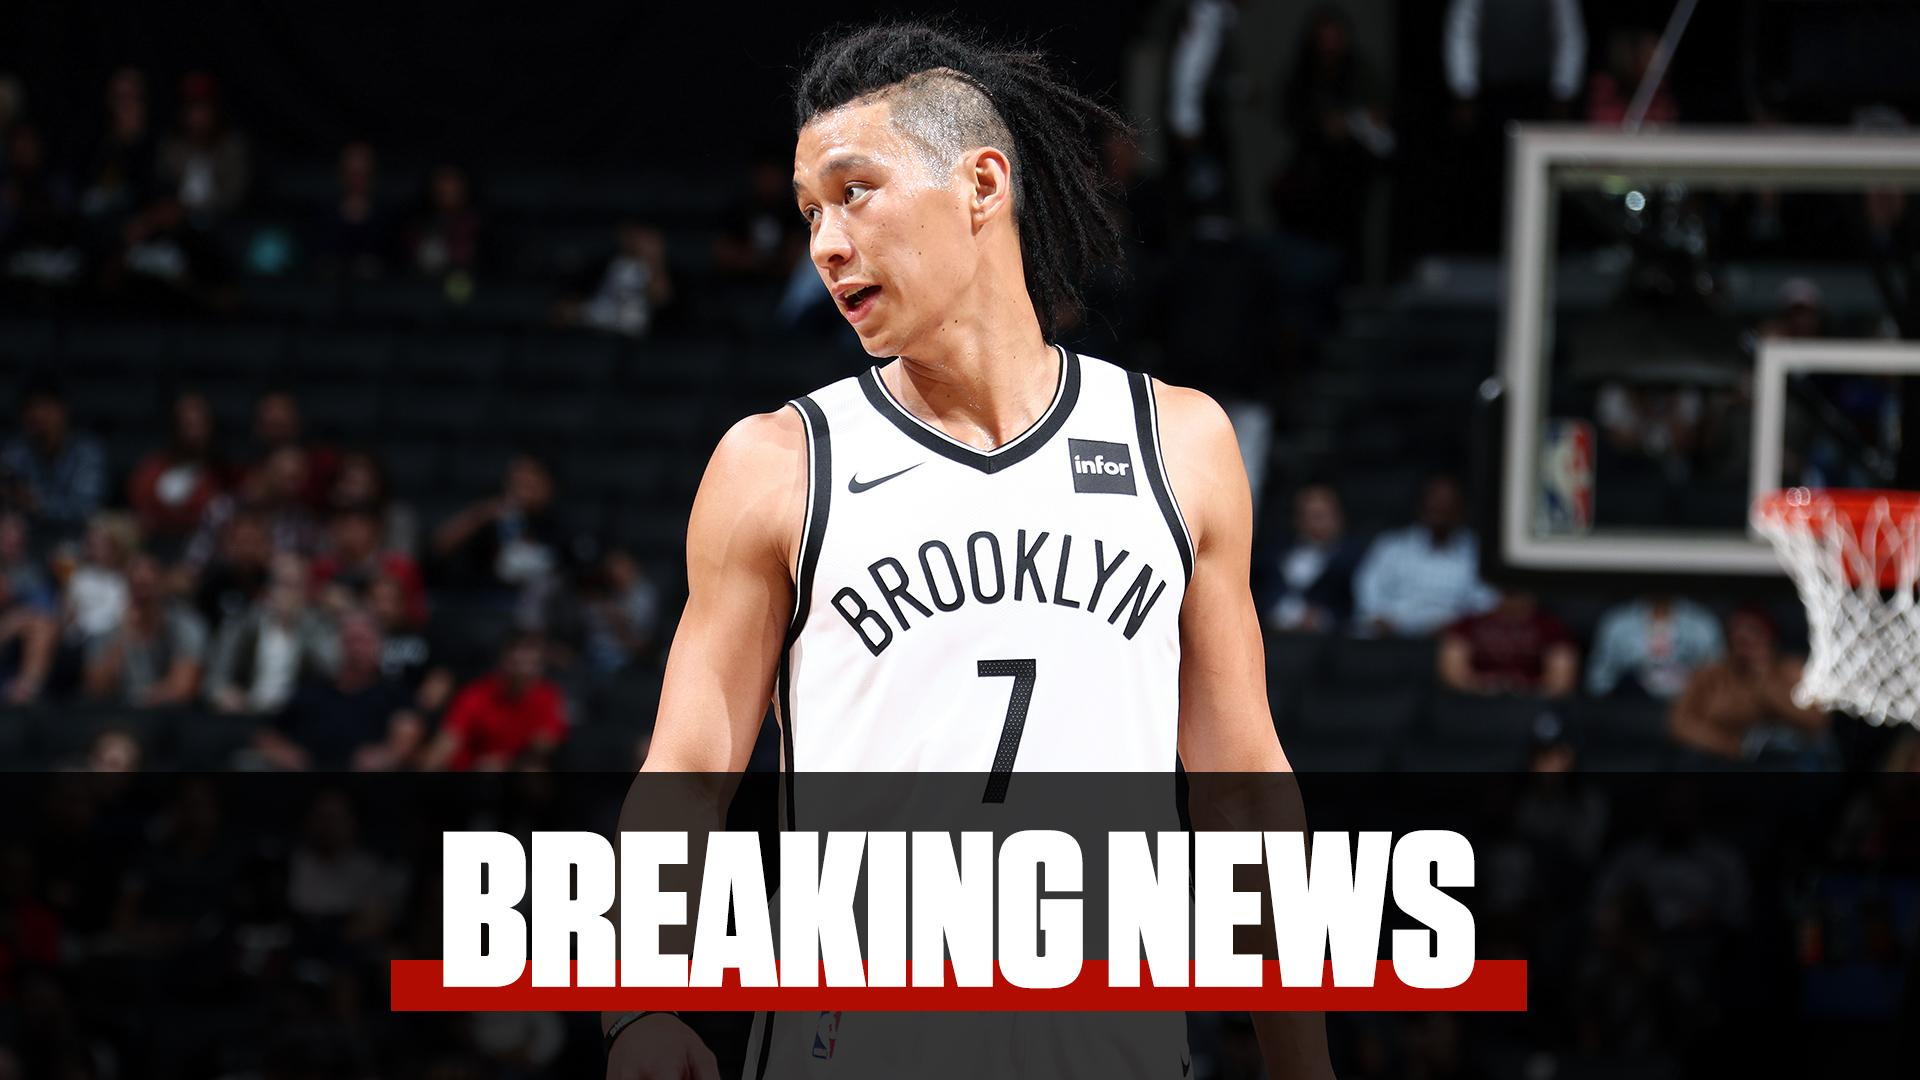 Breaking: The Nets have traded Jeremy Lin to the Hawks, league sources told @wojespn. https://t.co/hZpOVEvHL0